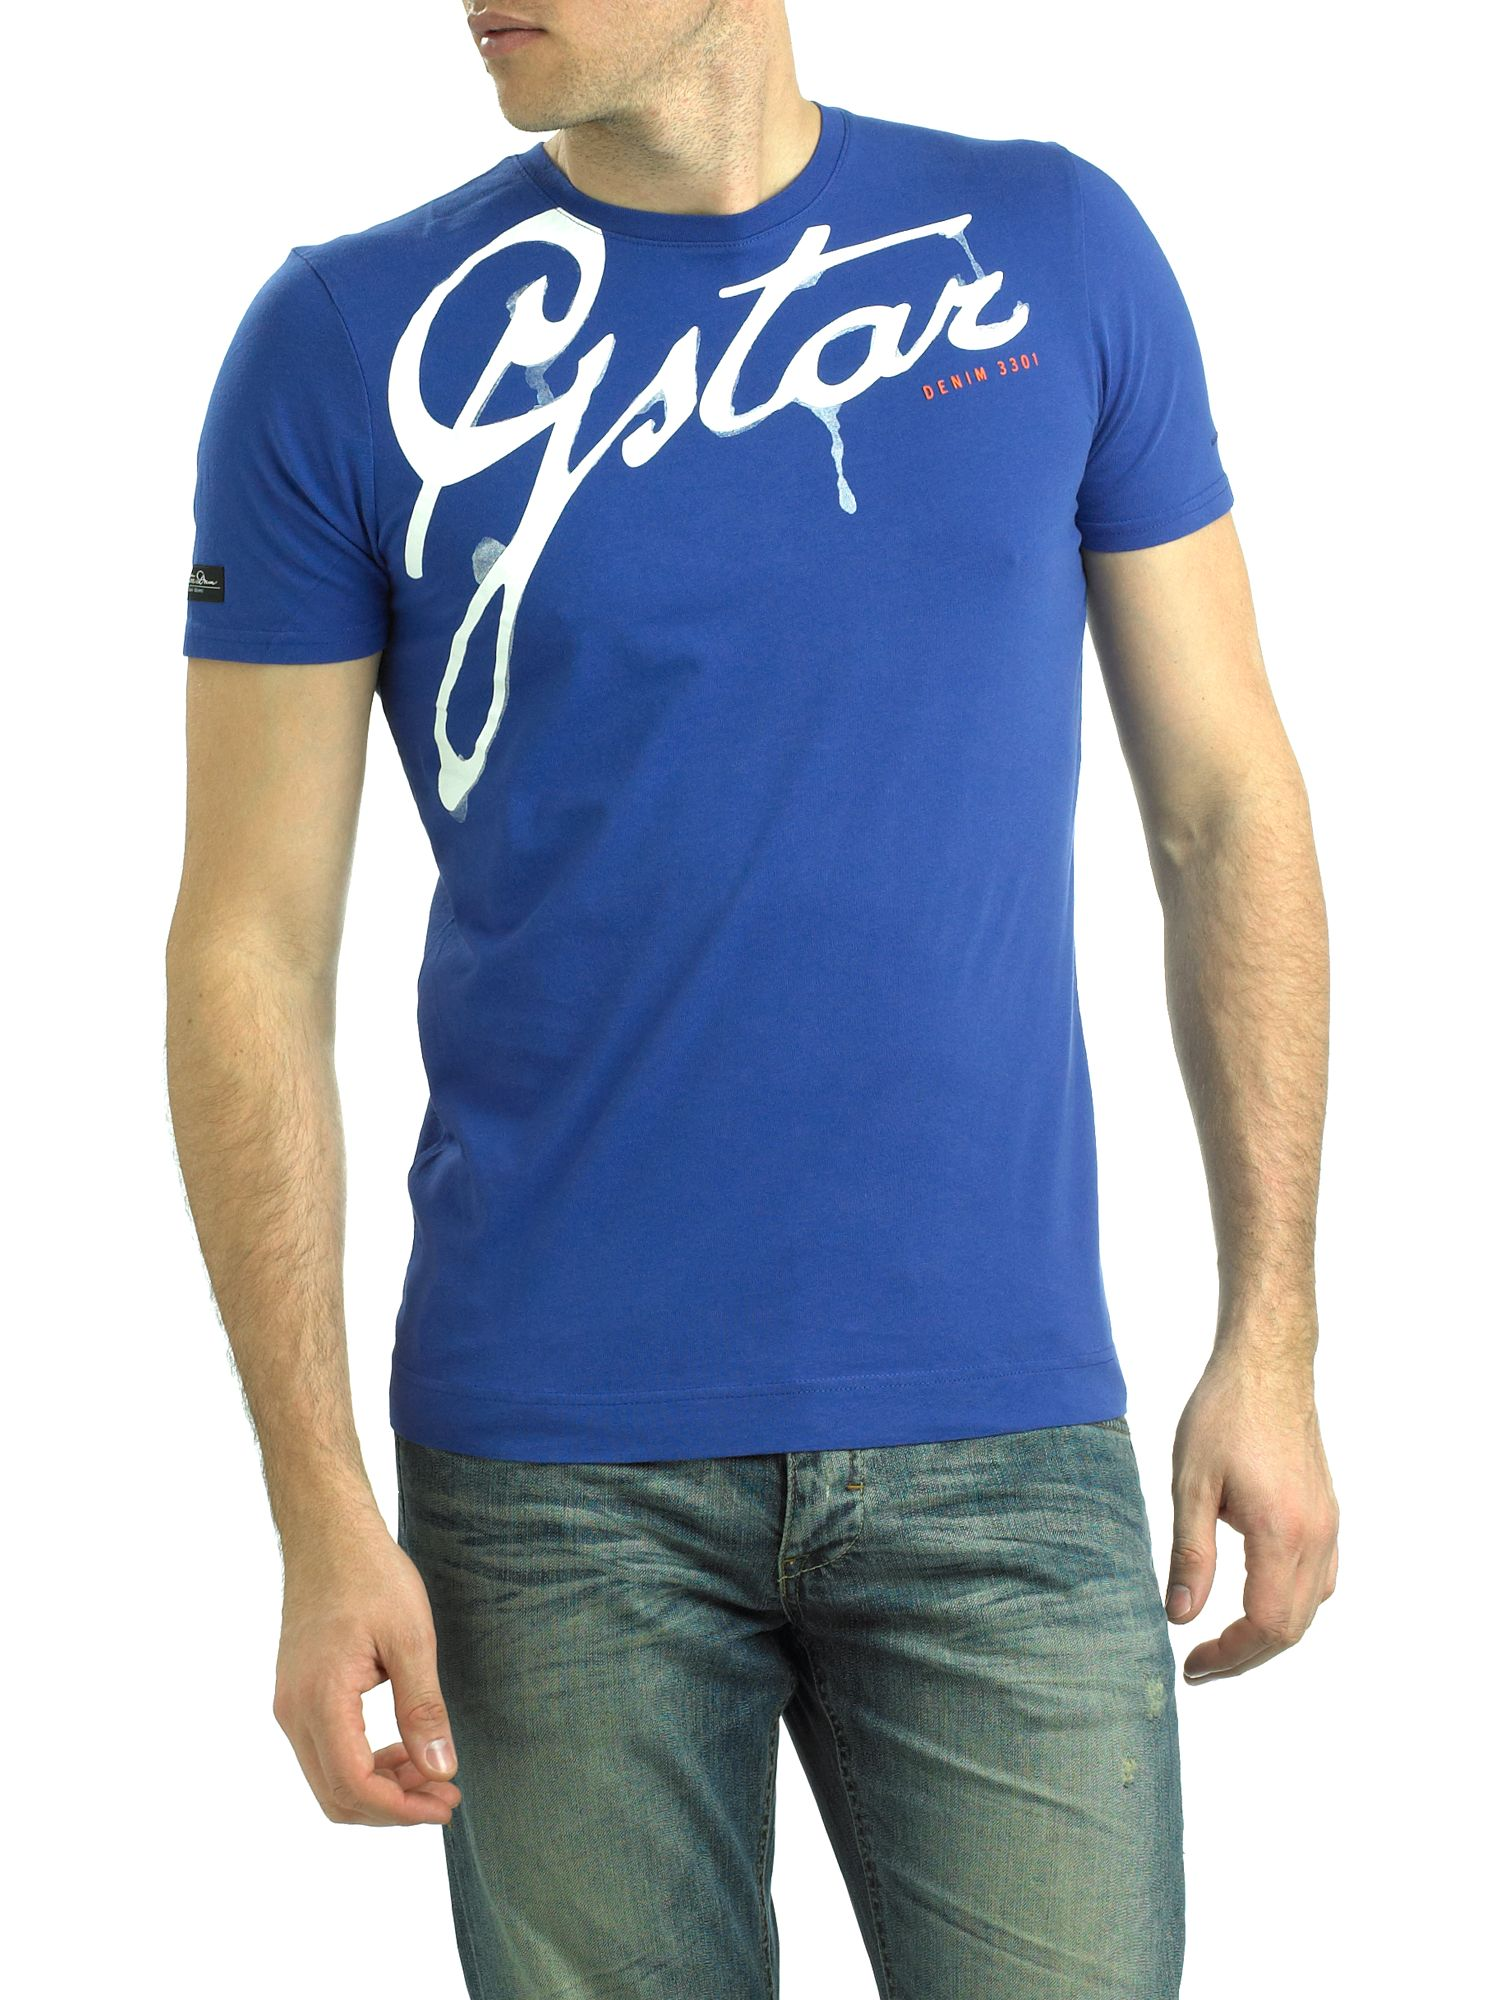 G-Star Short-sleeved crew neck G-star T-shirt product image